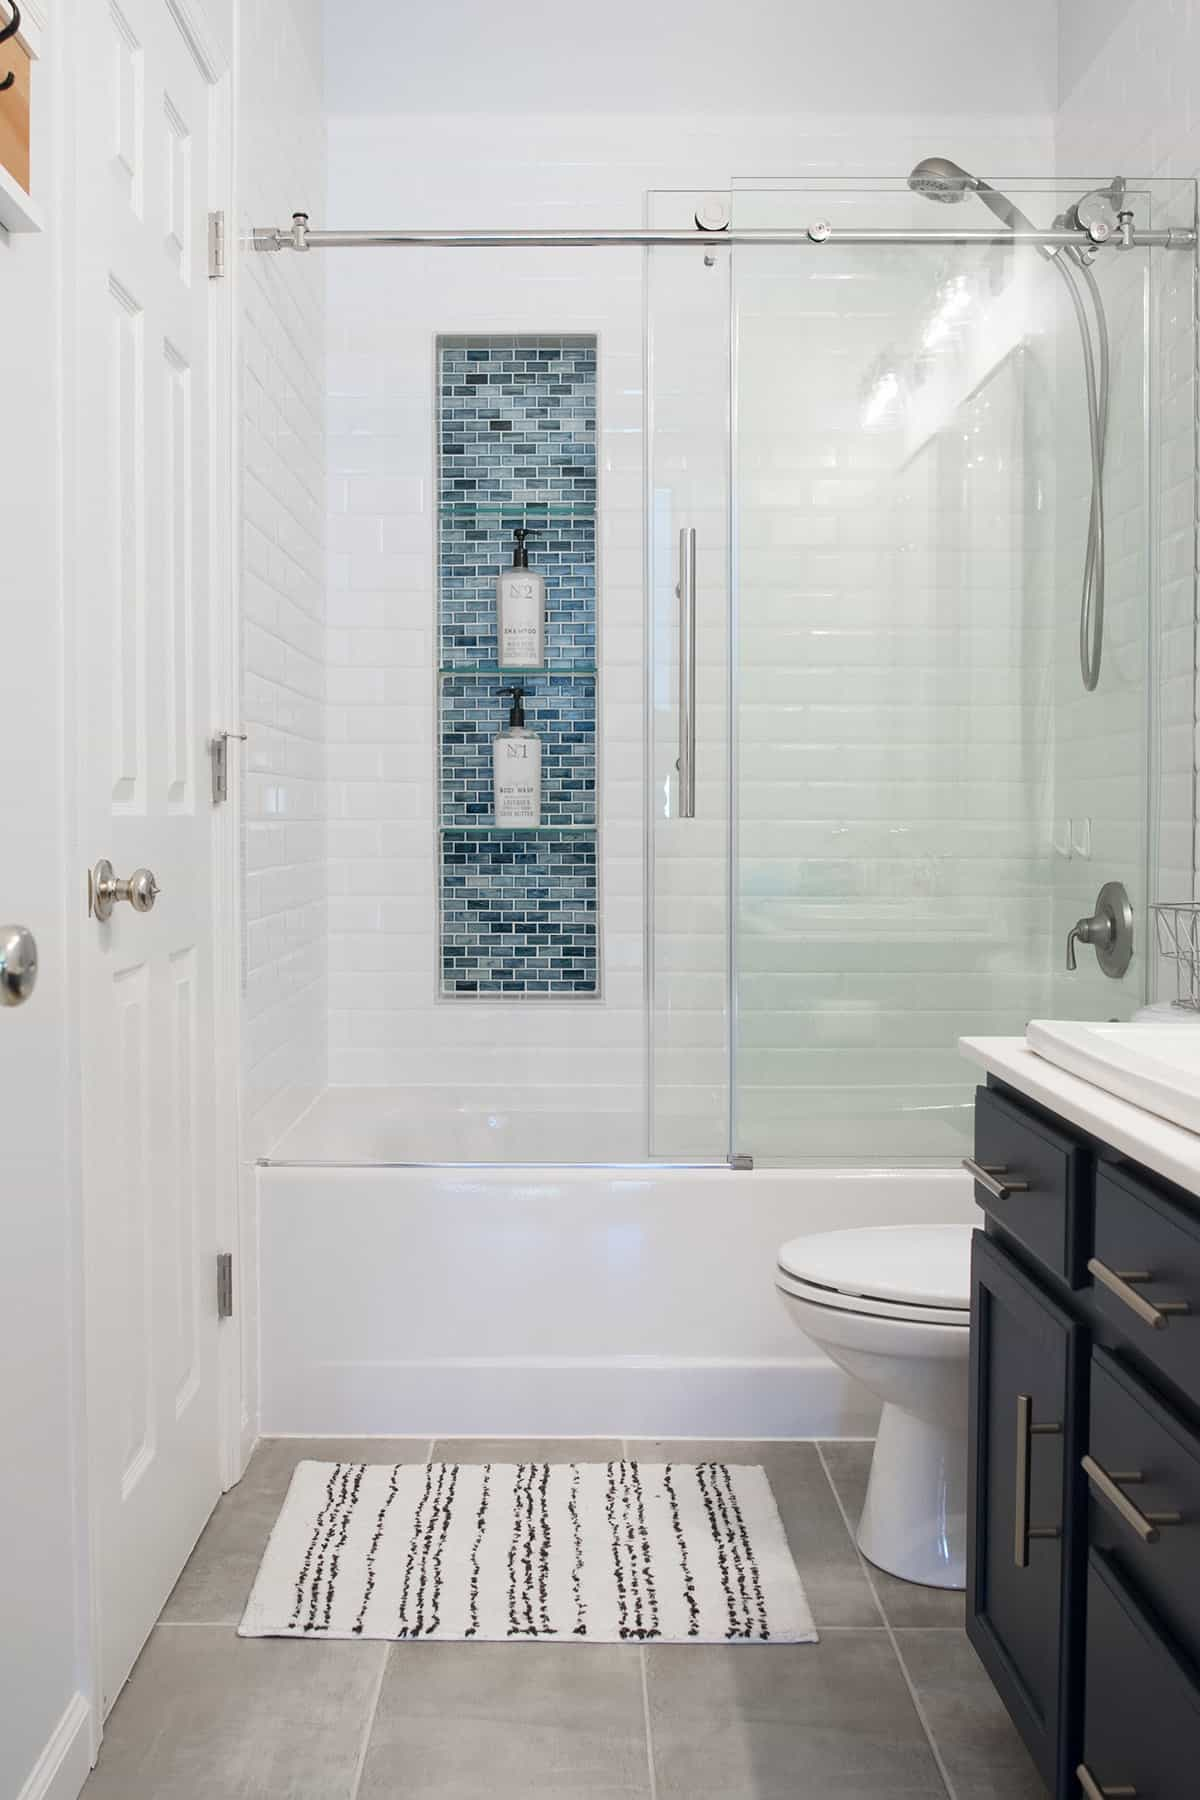 Acrylic tub with sliding glass shower door and mosaic tiled shower inlay in modern classic guest bathroom.